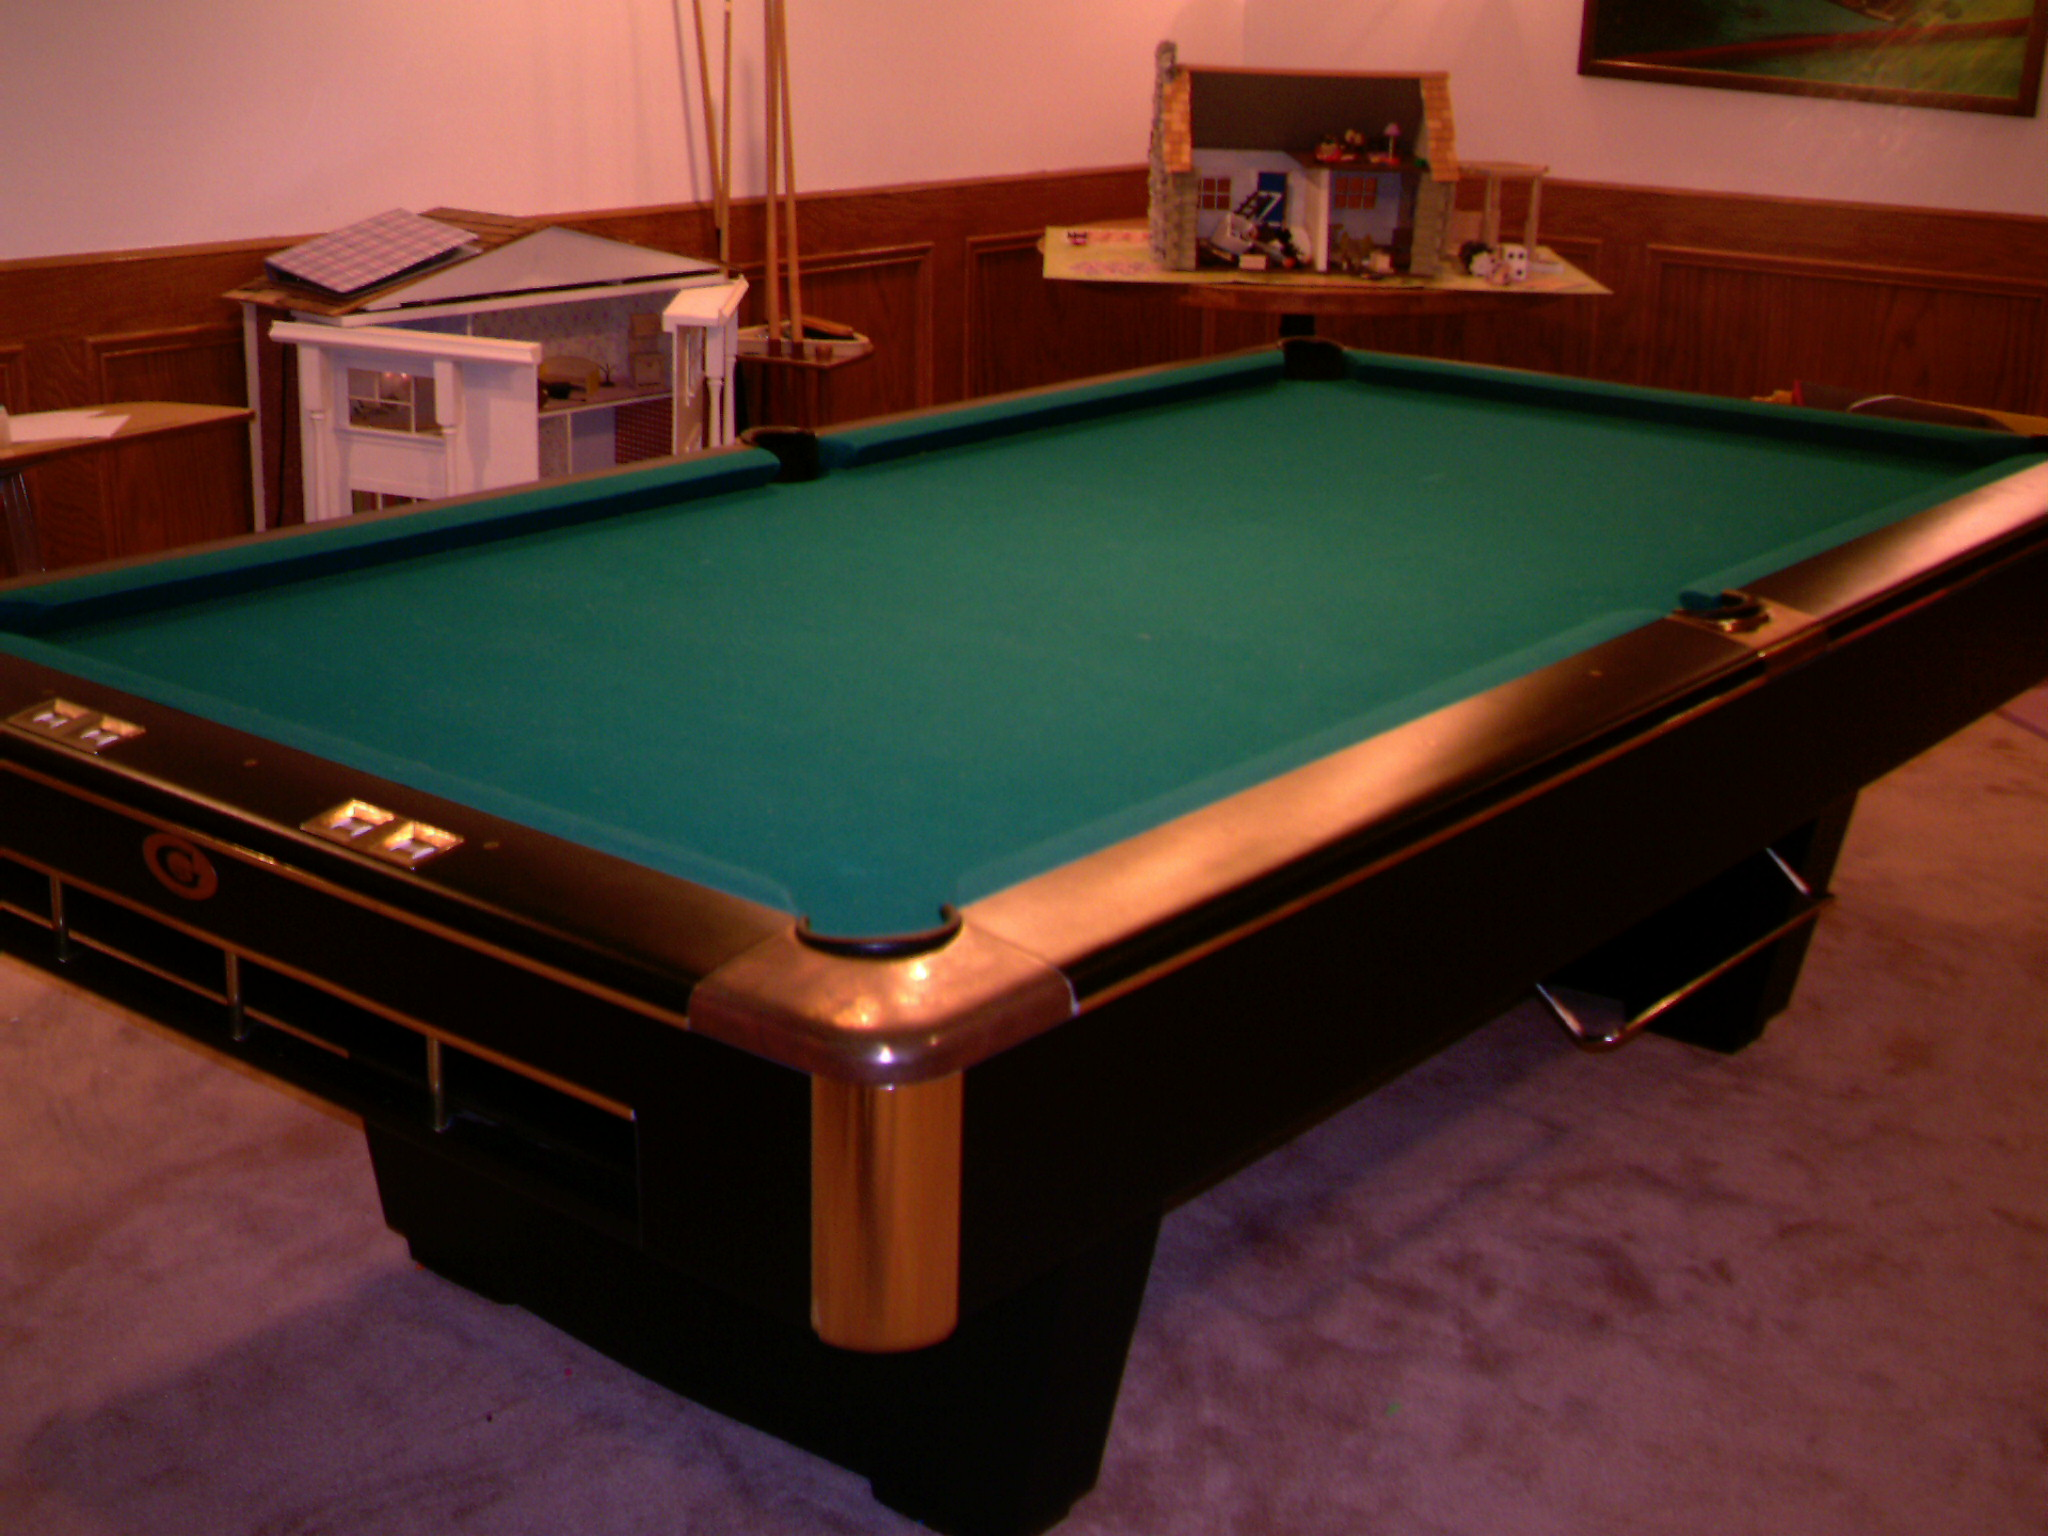 Pool Table Big G Gandy 9ft Pro Pd 5900 00 First 1699 00